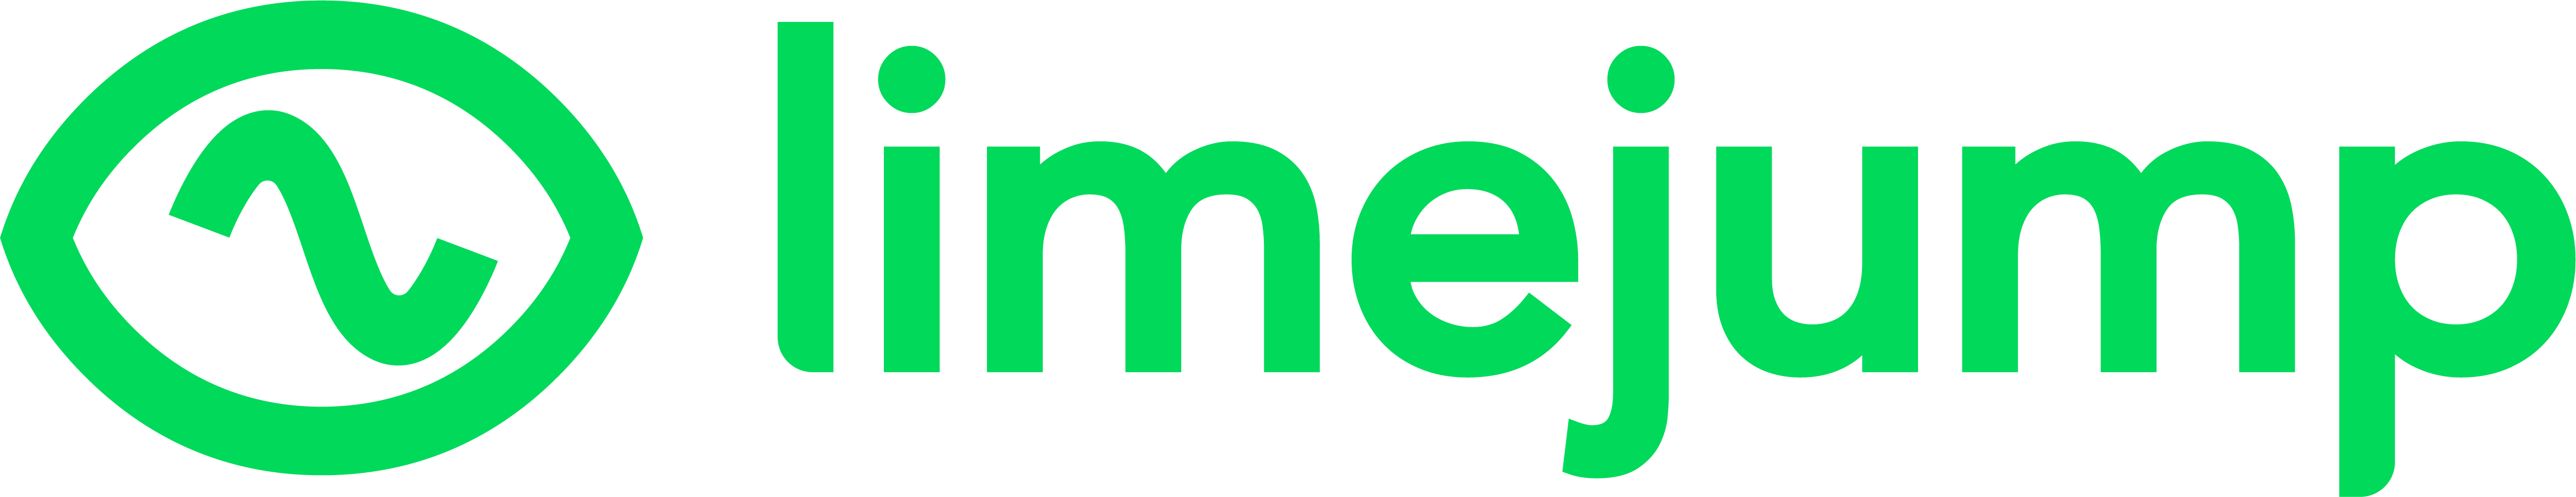 Limejump Demand Response Members The Association For